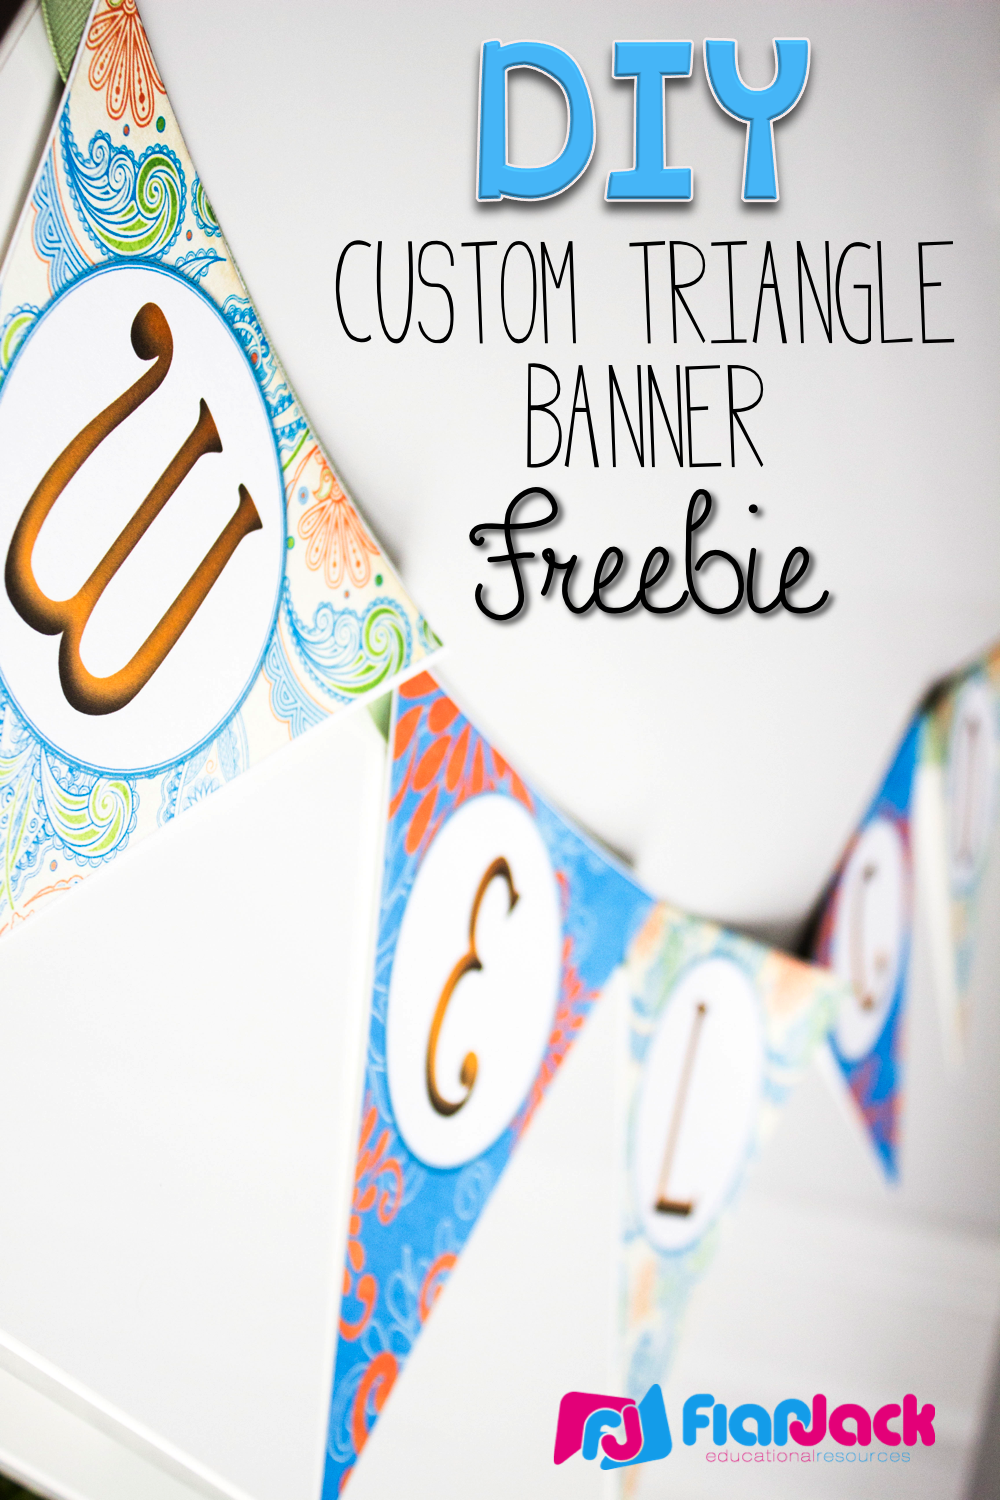 http://www.teacherspayteachers.com/Product/DIY-Custom-Triangle-Banner-Template-FREEBIE-1343806